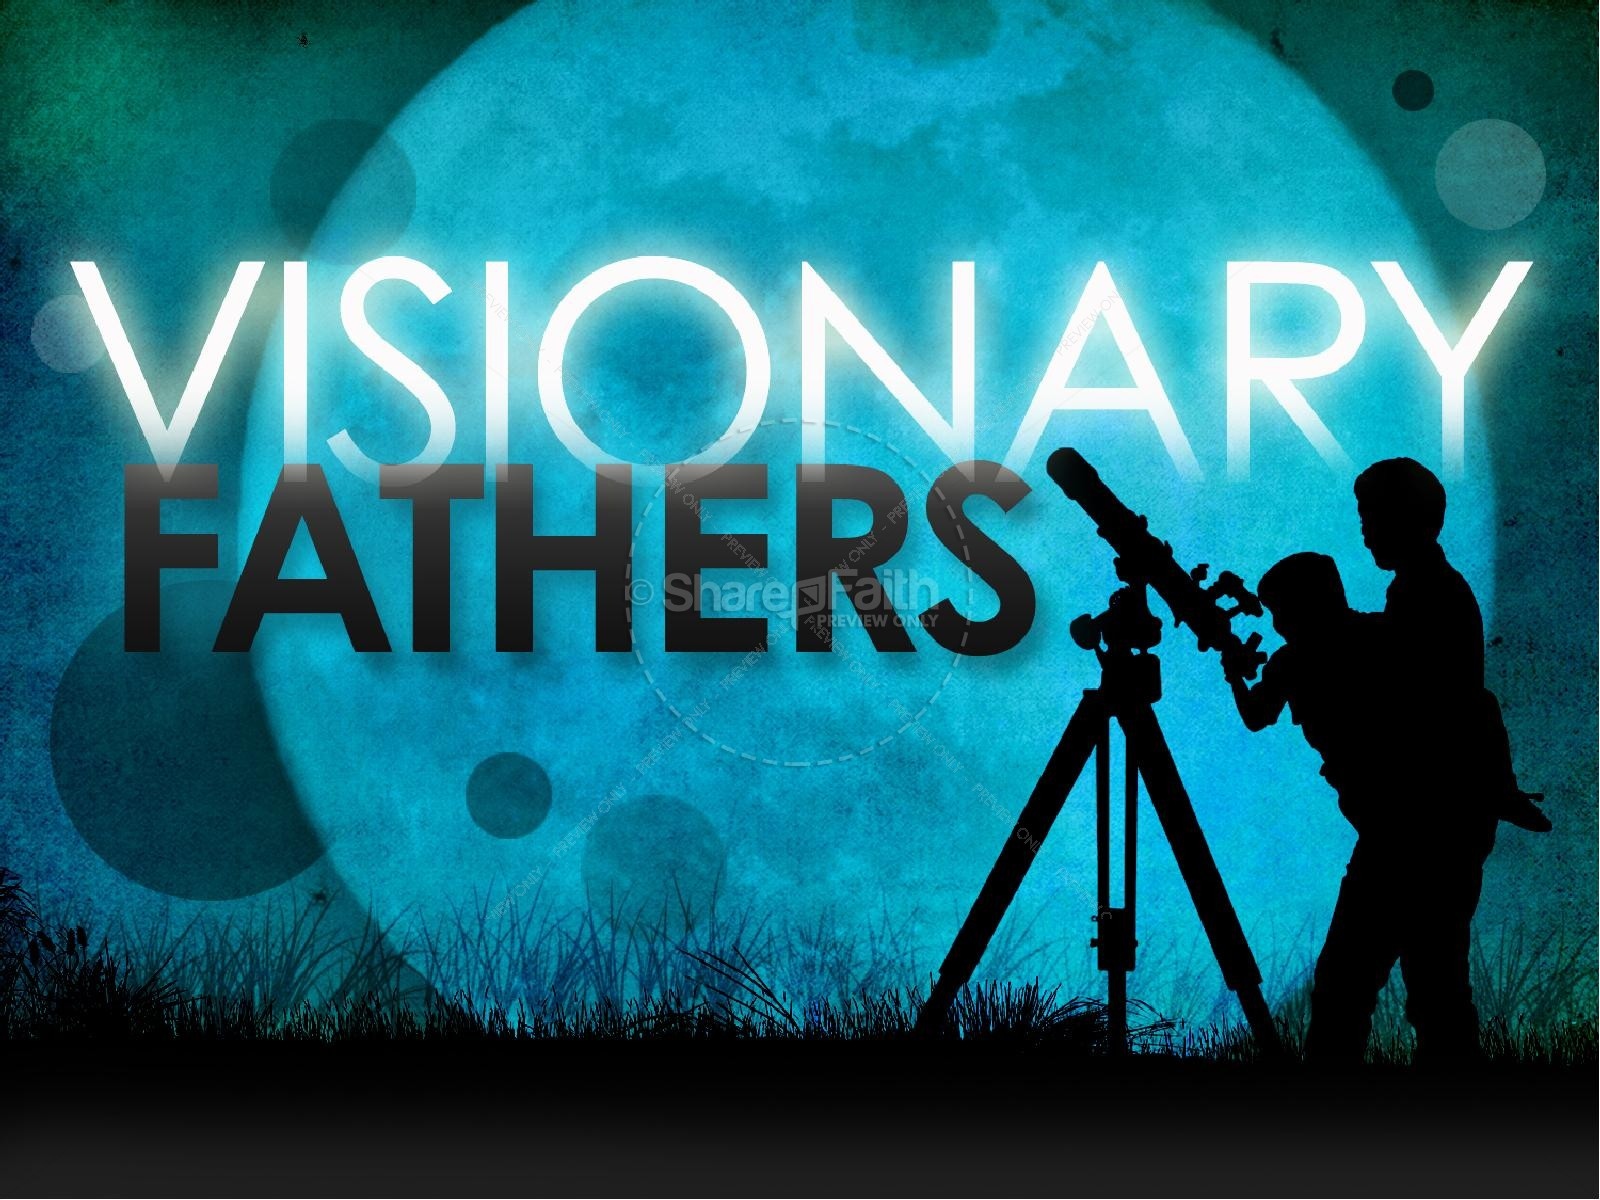 Visionary Father's Day PowerPoint Template